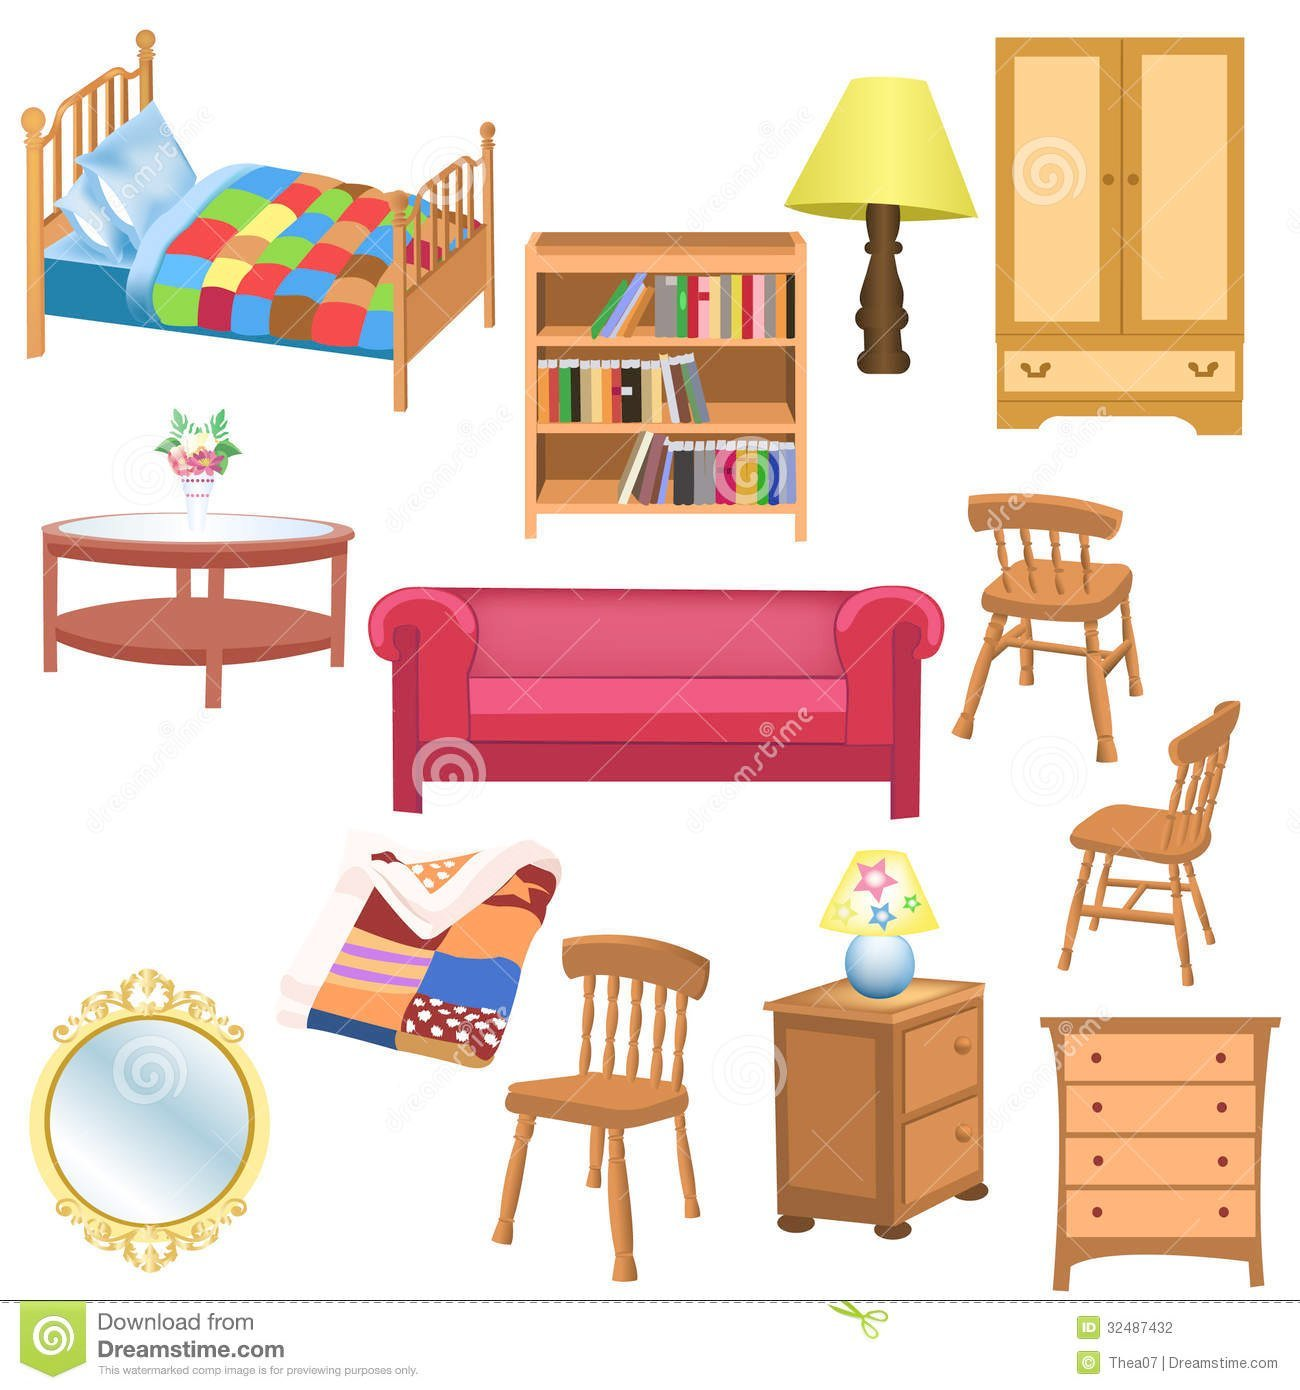 Things in the bedroom clipart 7 » Clipart Portal.